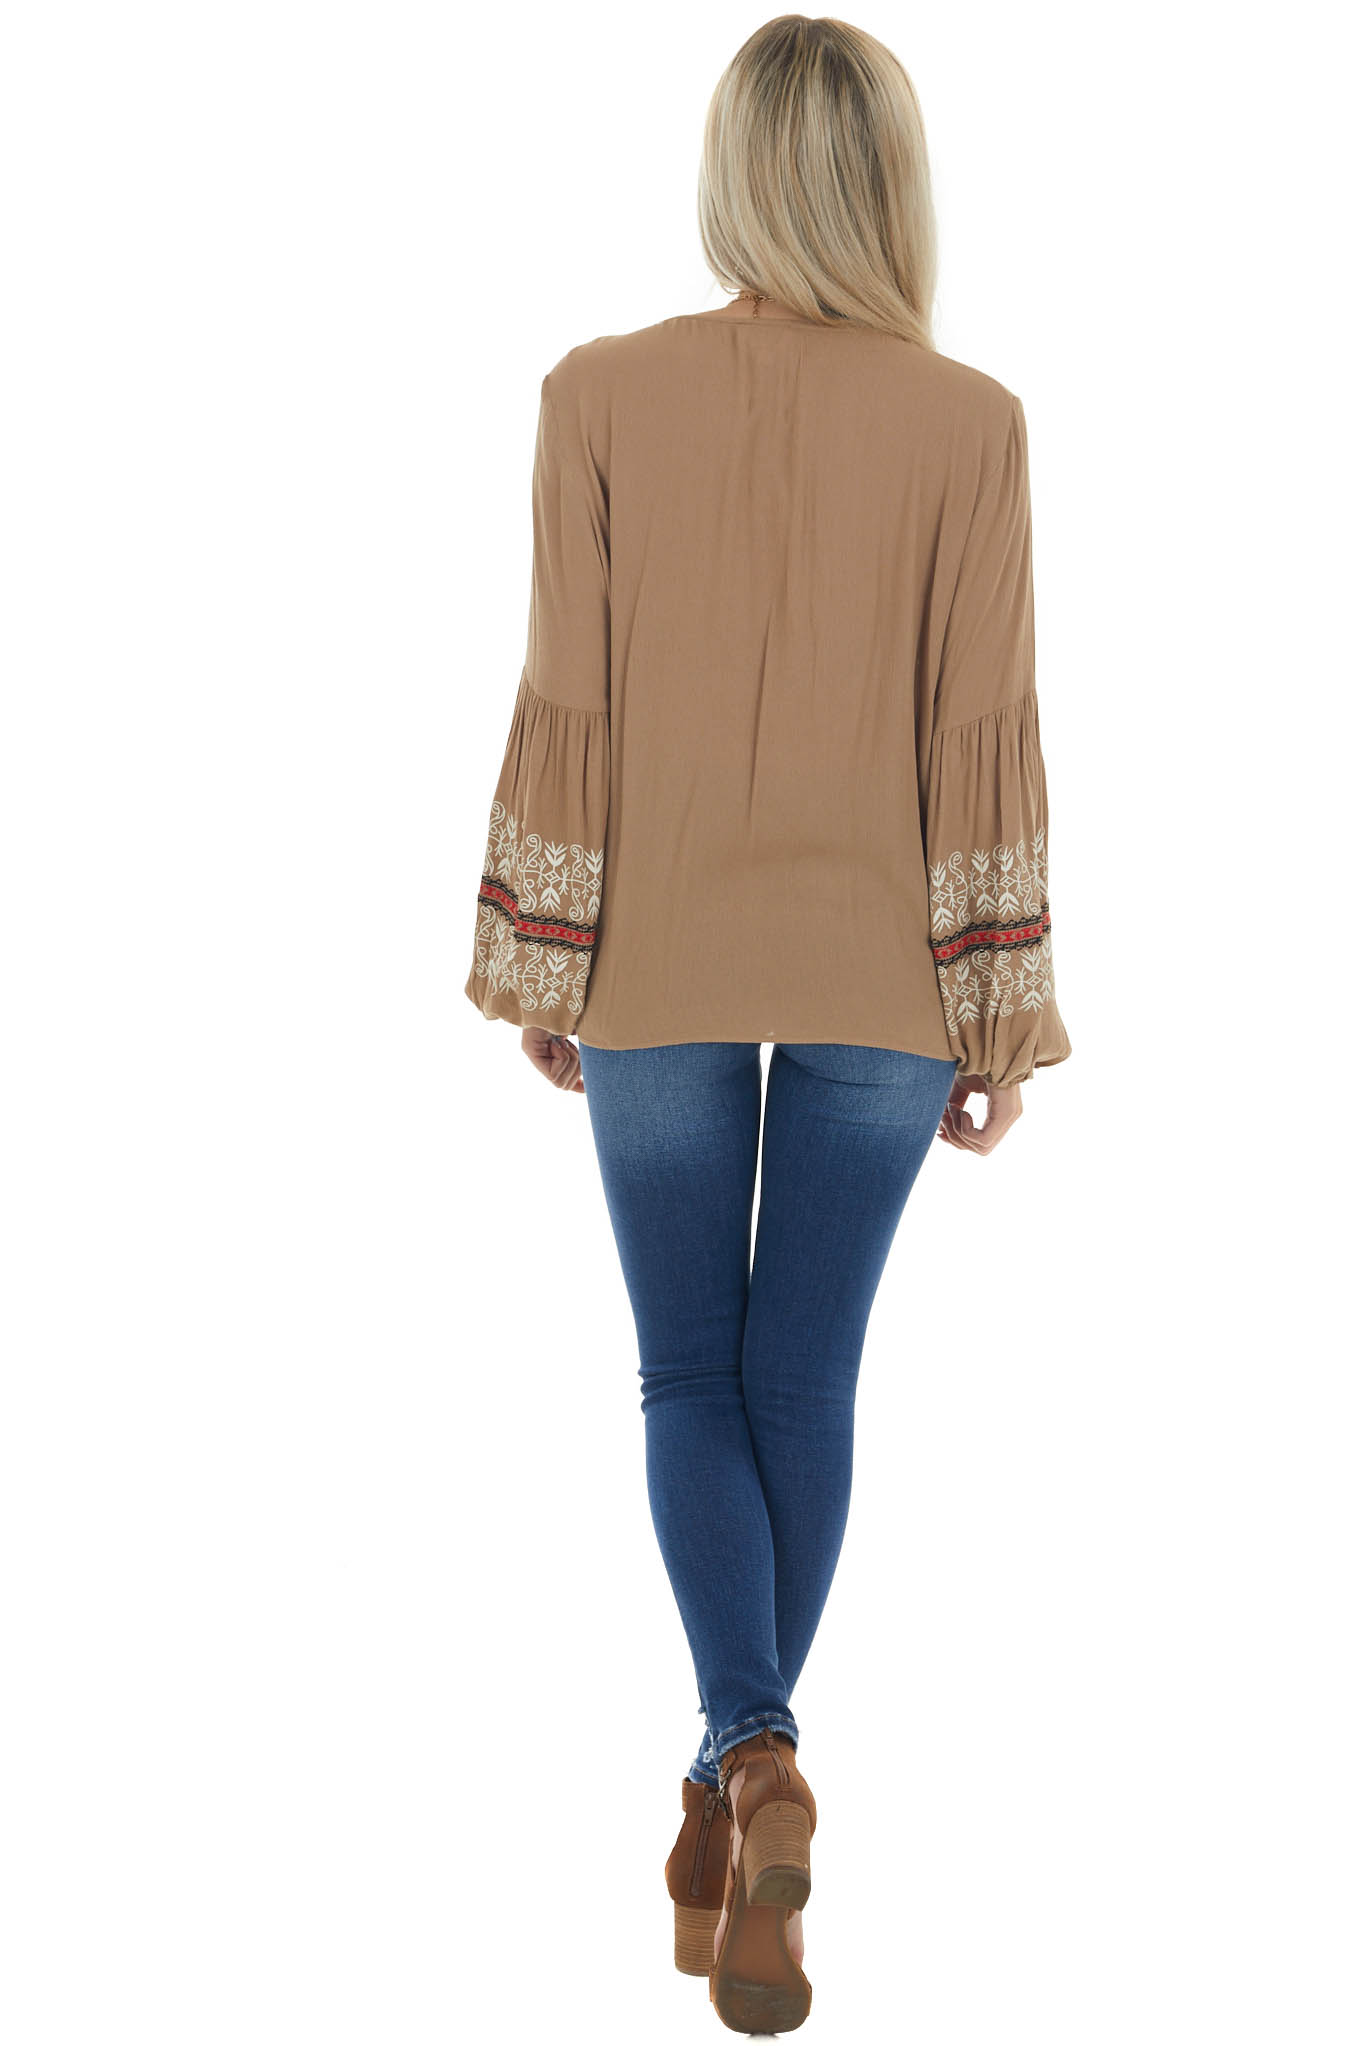 Peanut Printed Sleeve Top with Front Tie